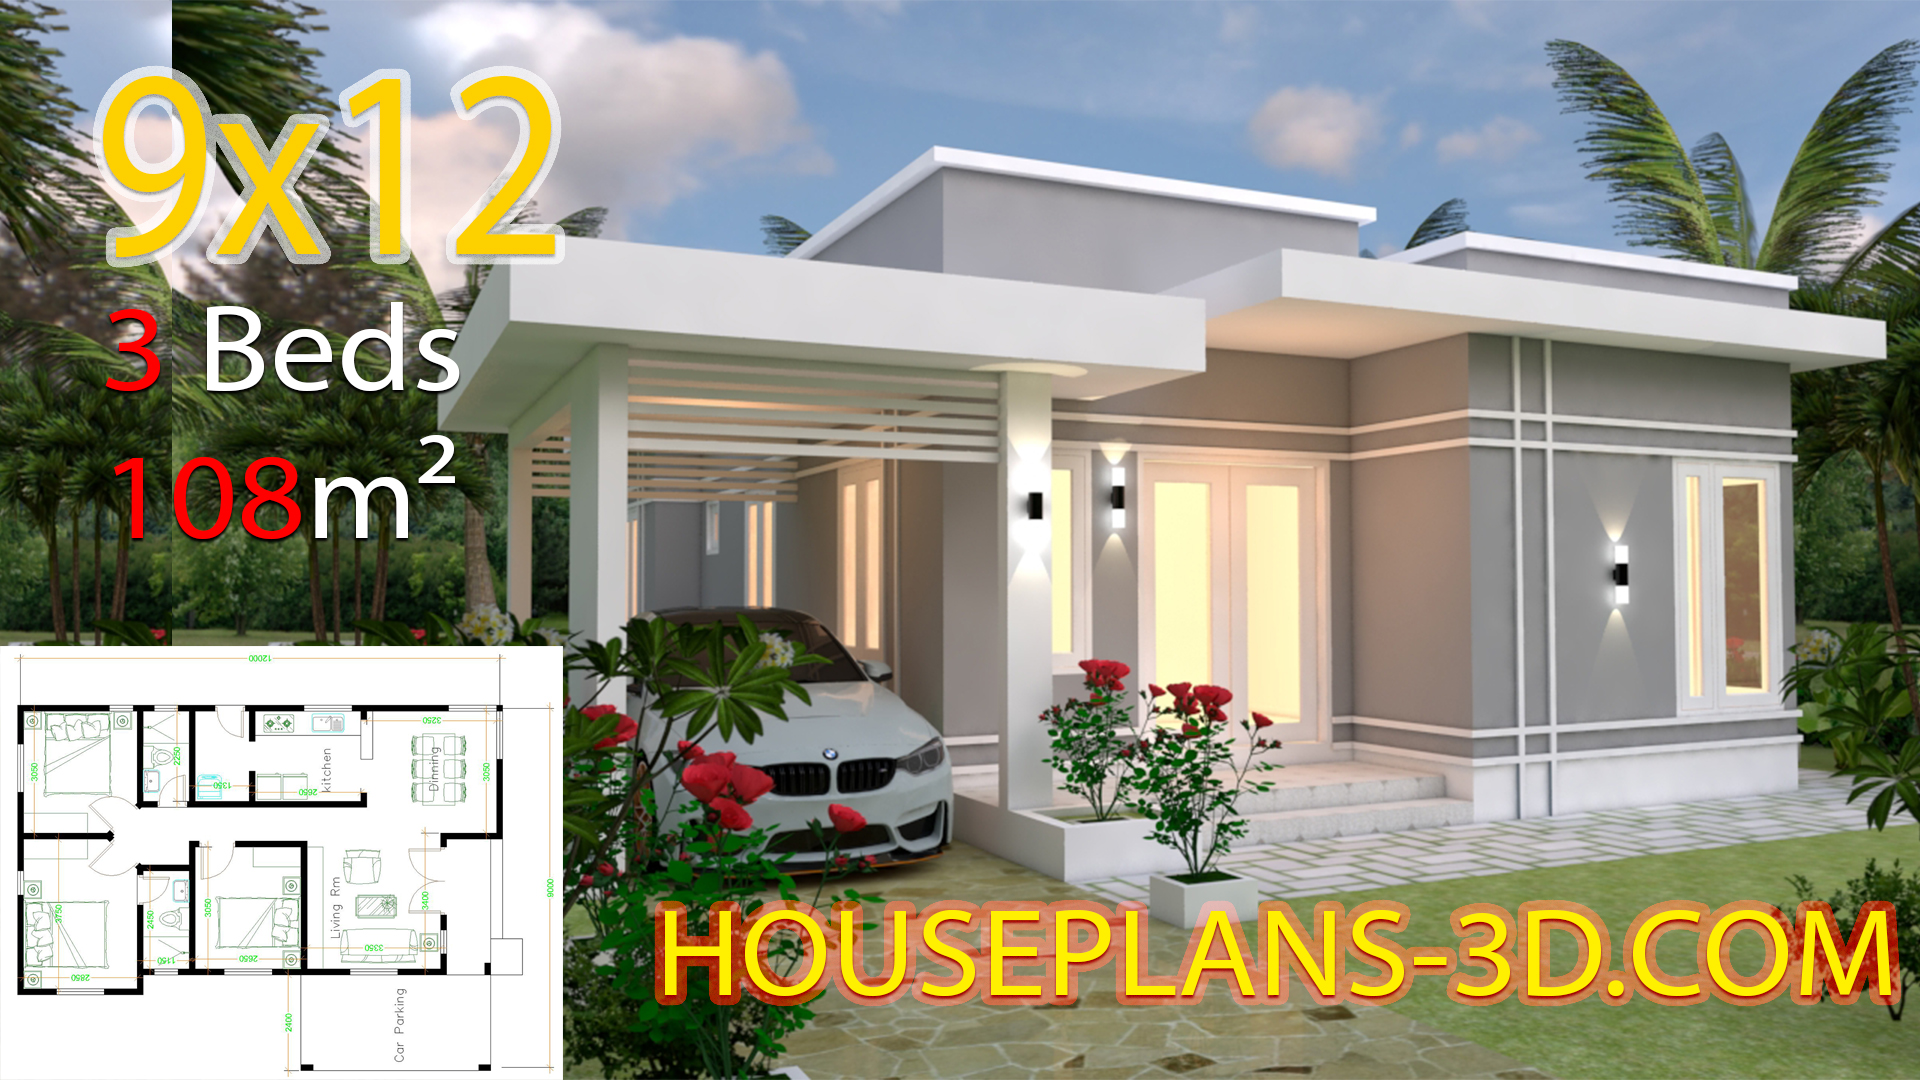 House Design Plans 9x12 With 3 Bedrooms Terrace Roof House Plans 3d